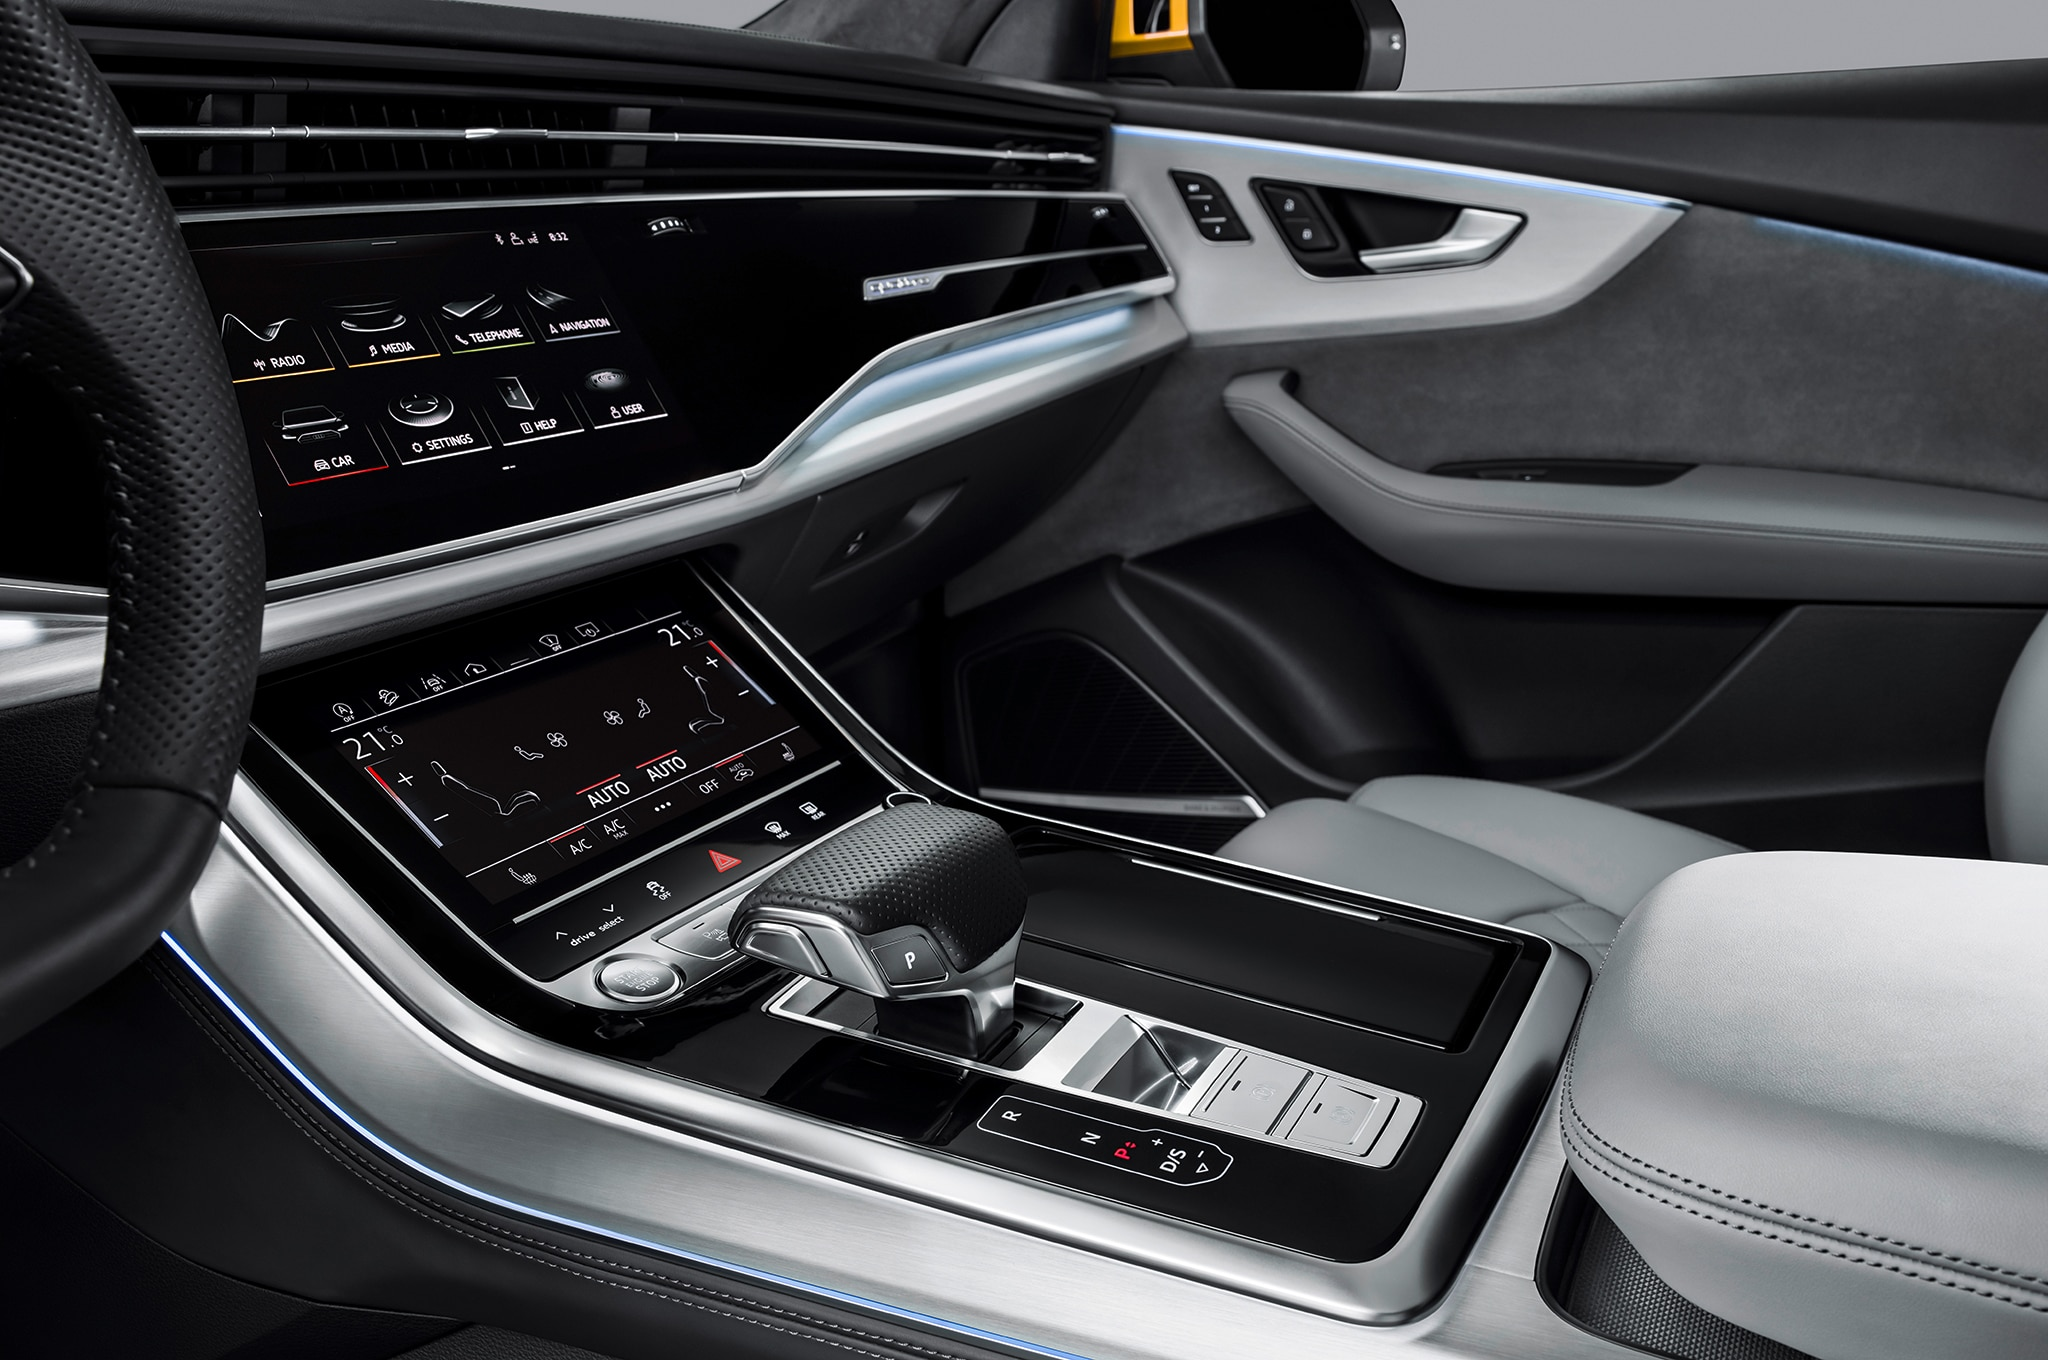 2019 Audi Q8: News, Design, Versions, Price >> 2019 Audi Q8 Review You Don T Need To Drive It To Get It